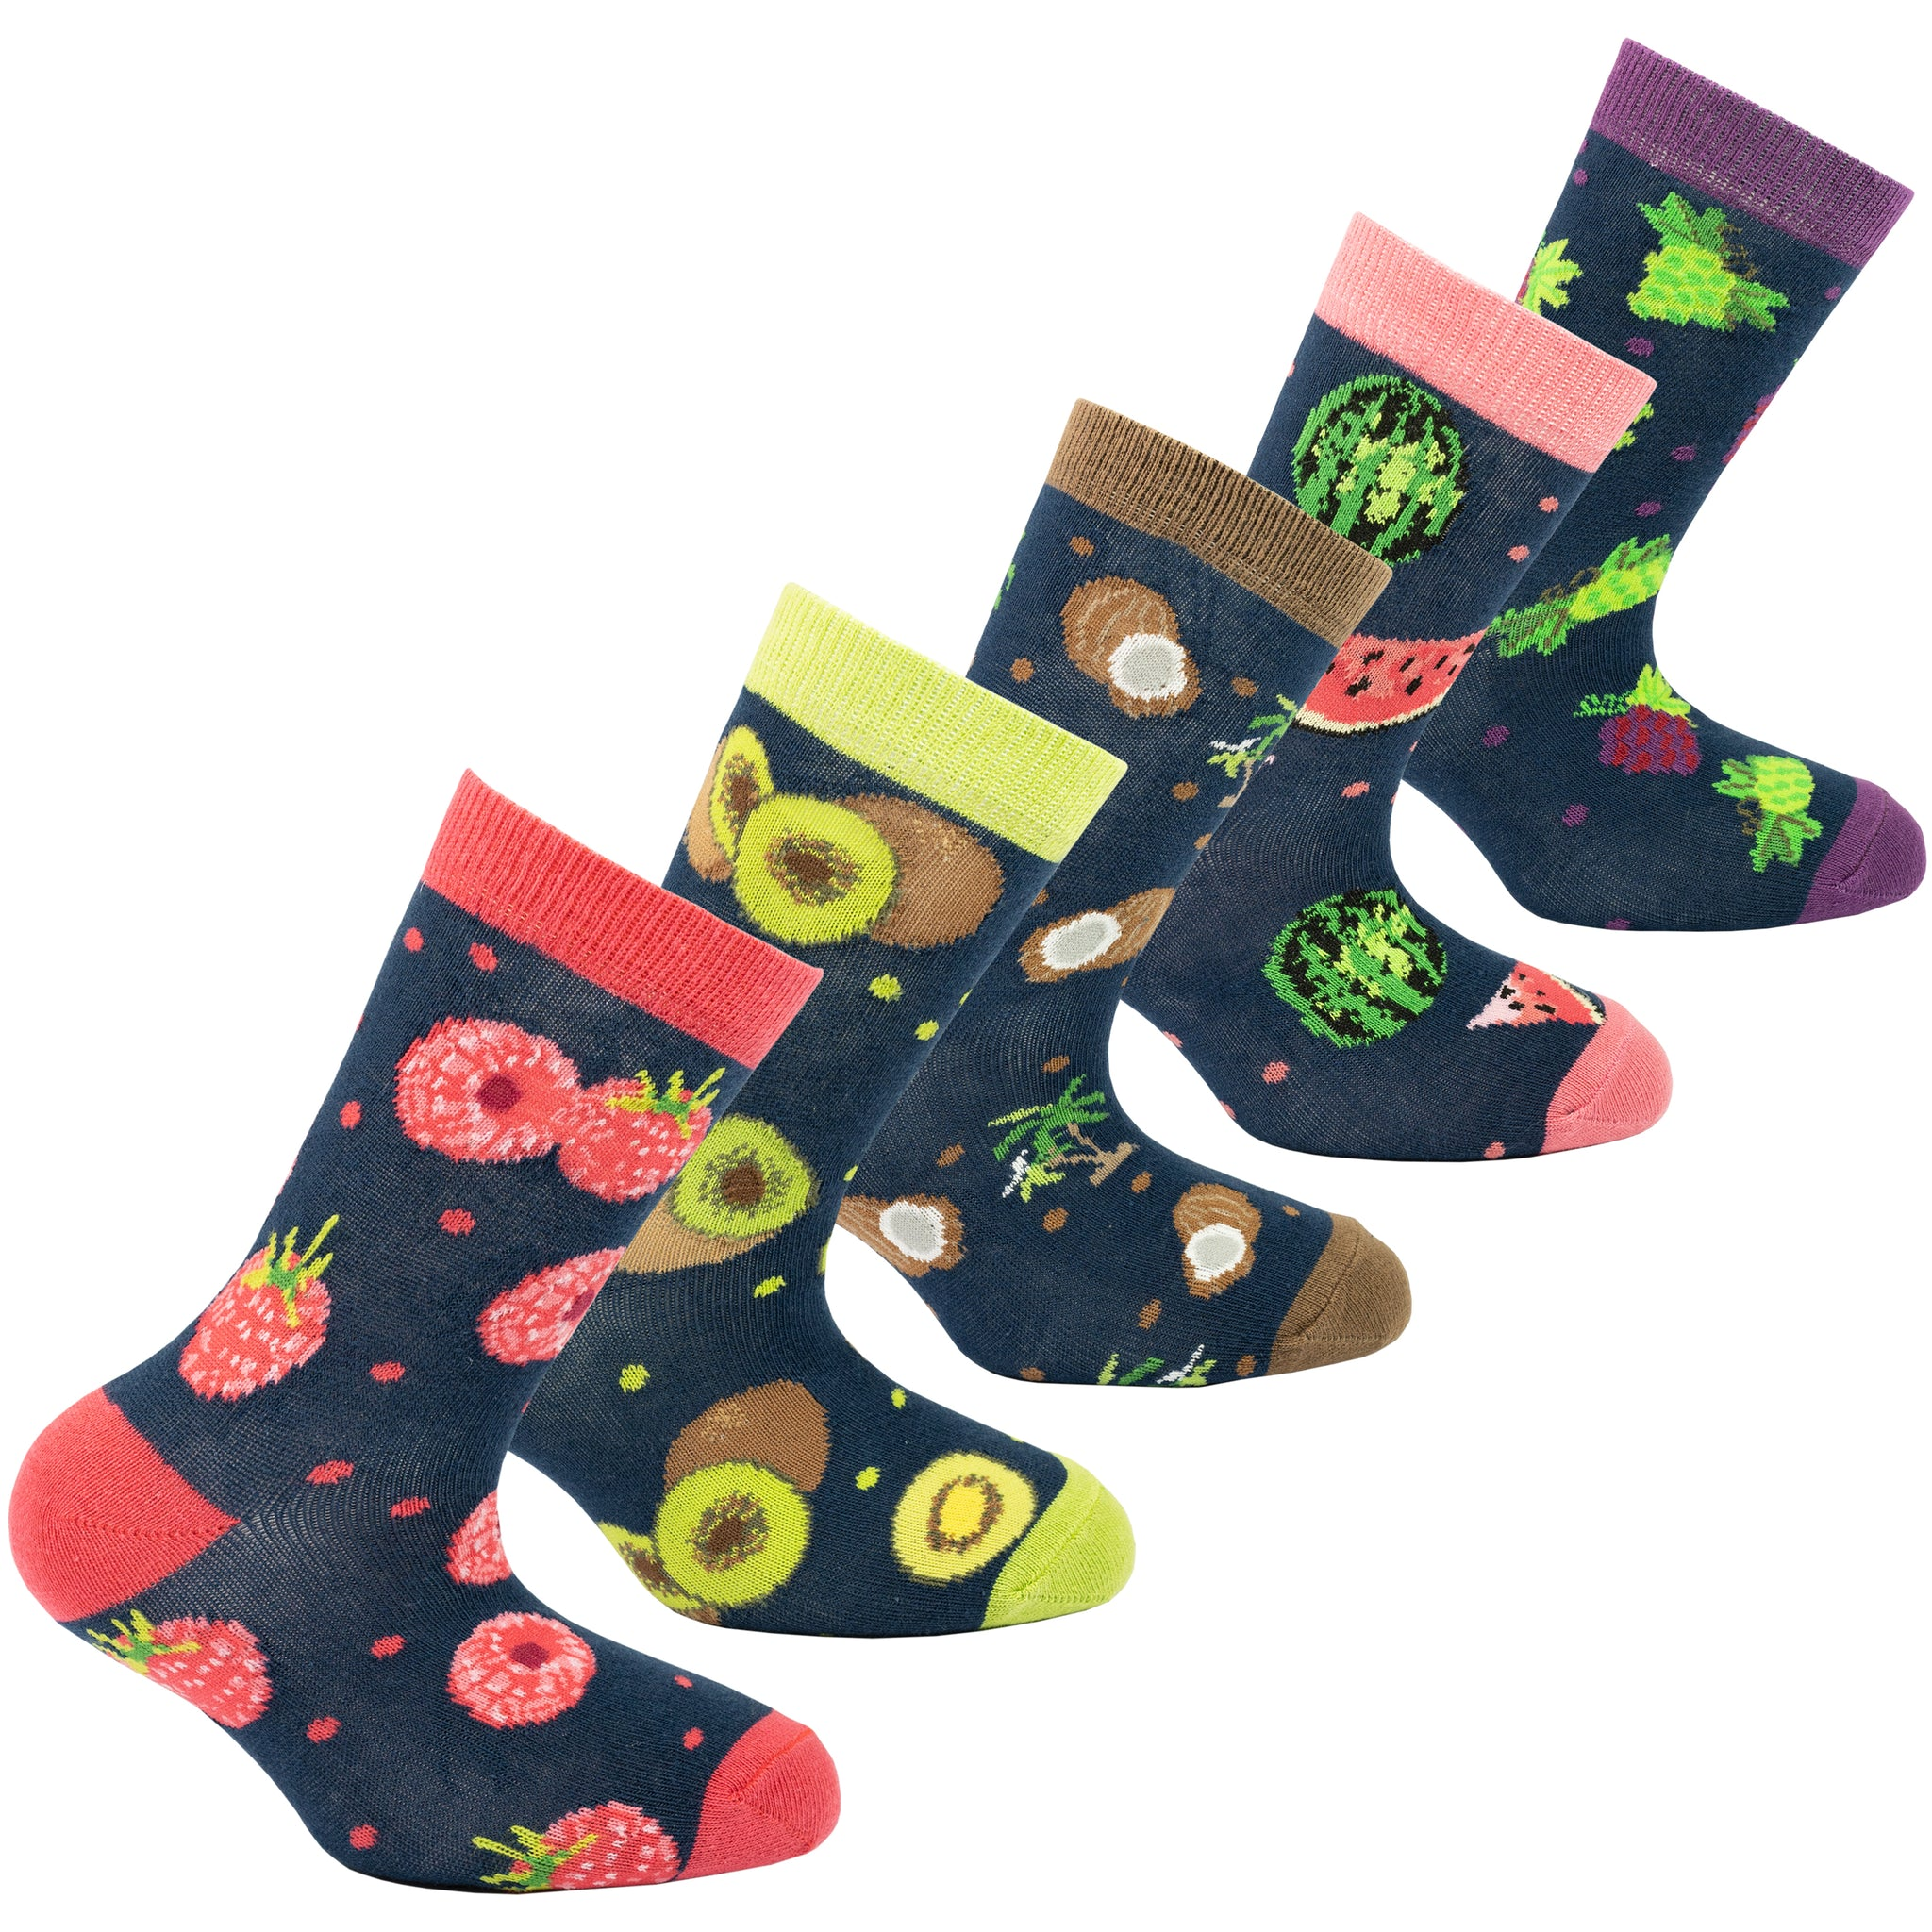 Kids Juicy Fruits Socks colorful